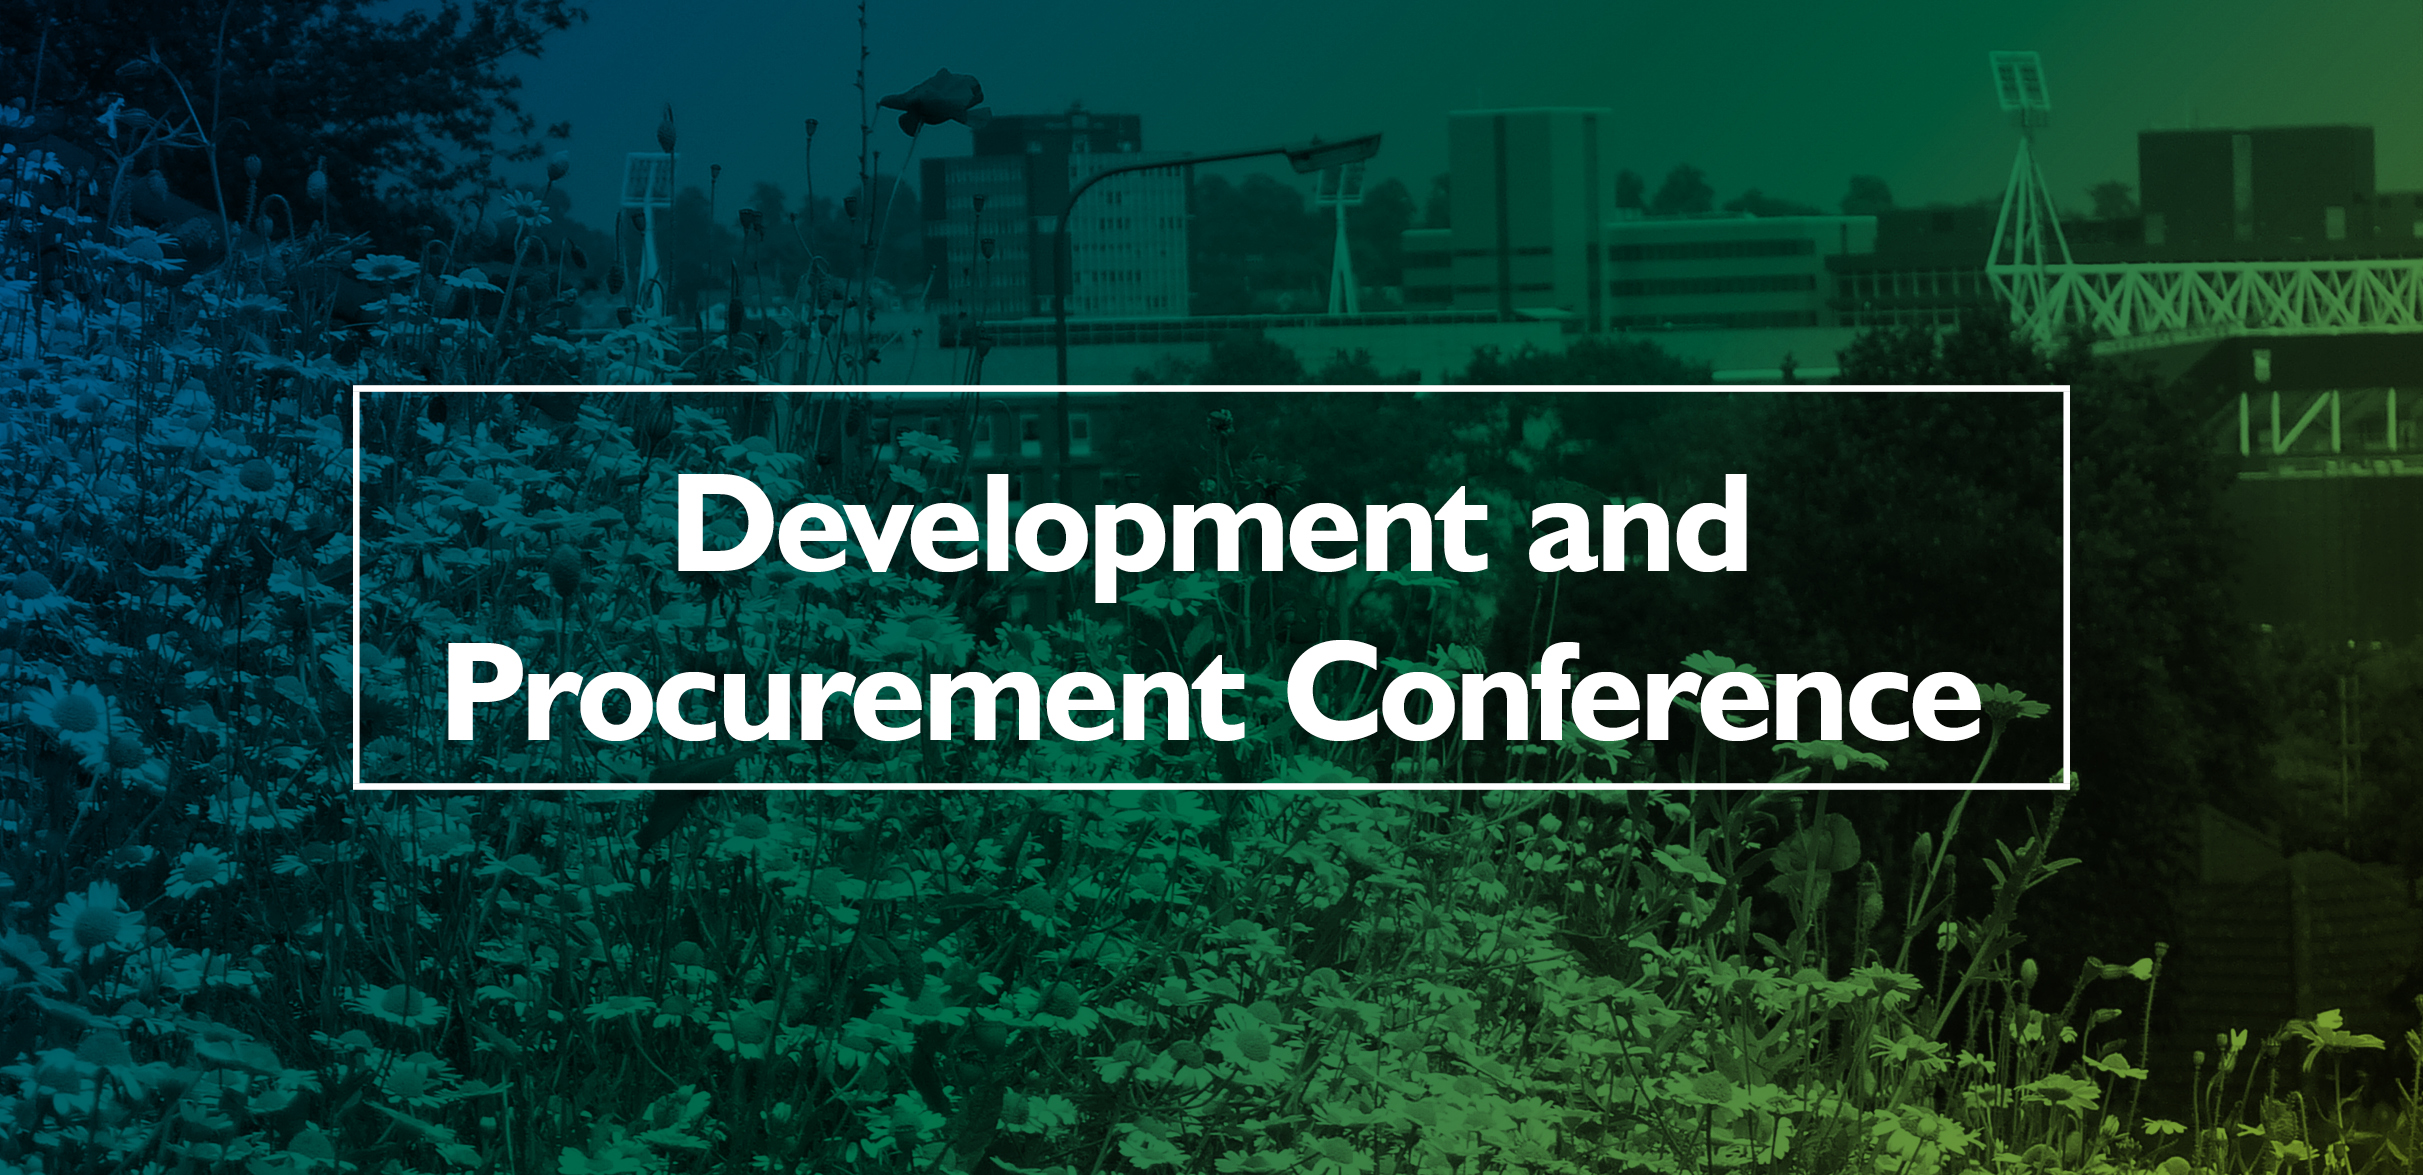 SFHA Development Conference to focus on social housing and green infrastructure image